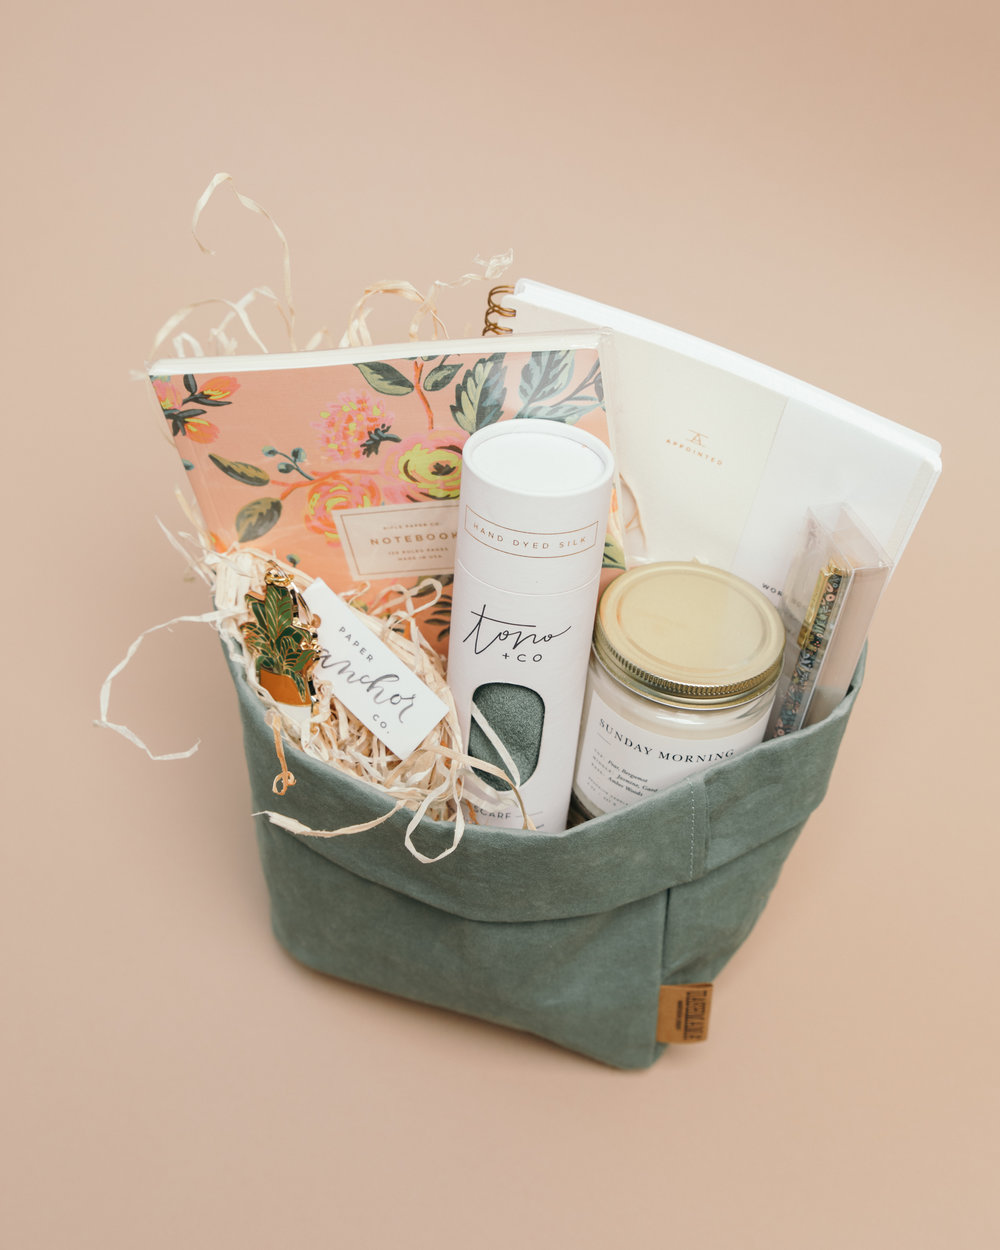 for the paper lover - Just looking at this basket makes us excited for warmer (but not humid) spring days. Know someone who loves to journal? This is the perfect gift for them!Large Sage Uashmama, $26Rifle Notebook, $15 and Pen, $16Too + Co Scarf, $45Sunday Morning Candle, $25Linen White Appointed Workbook, $22Banana Leaf Keychain, $16